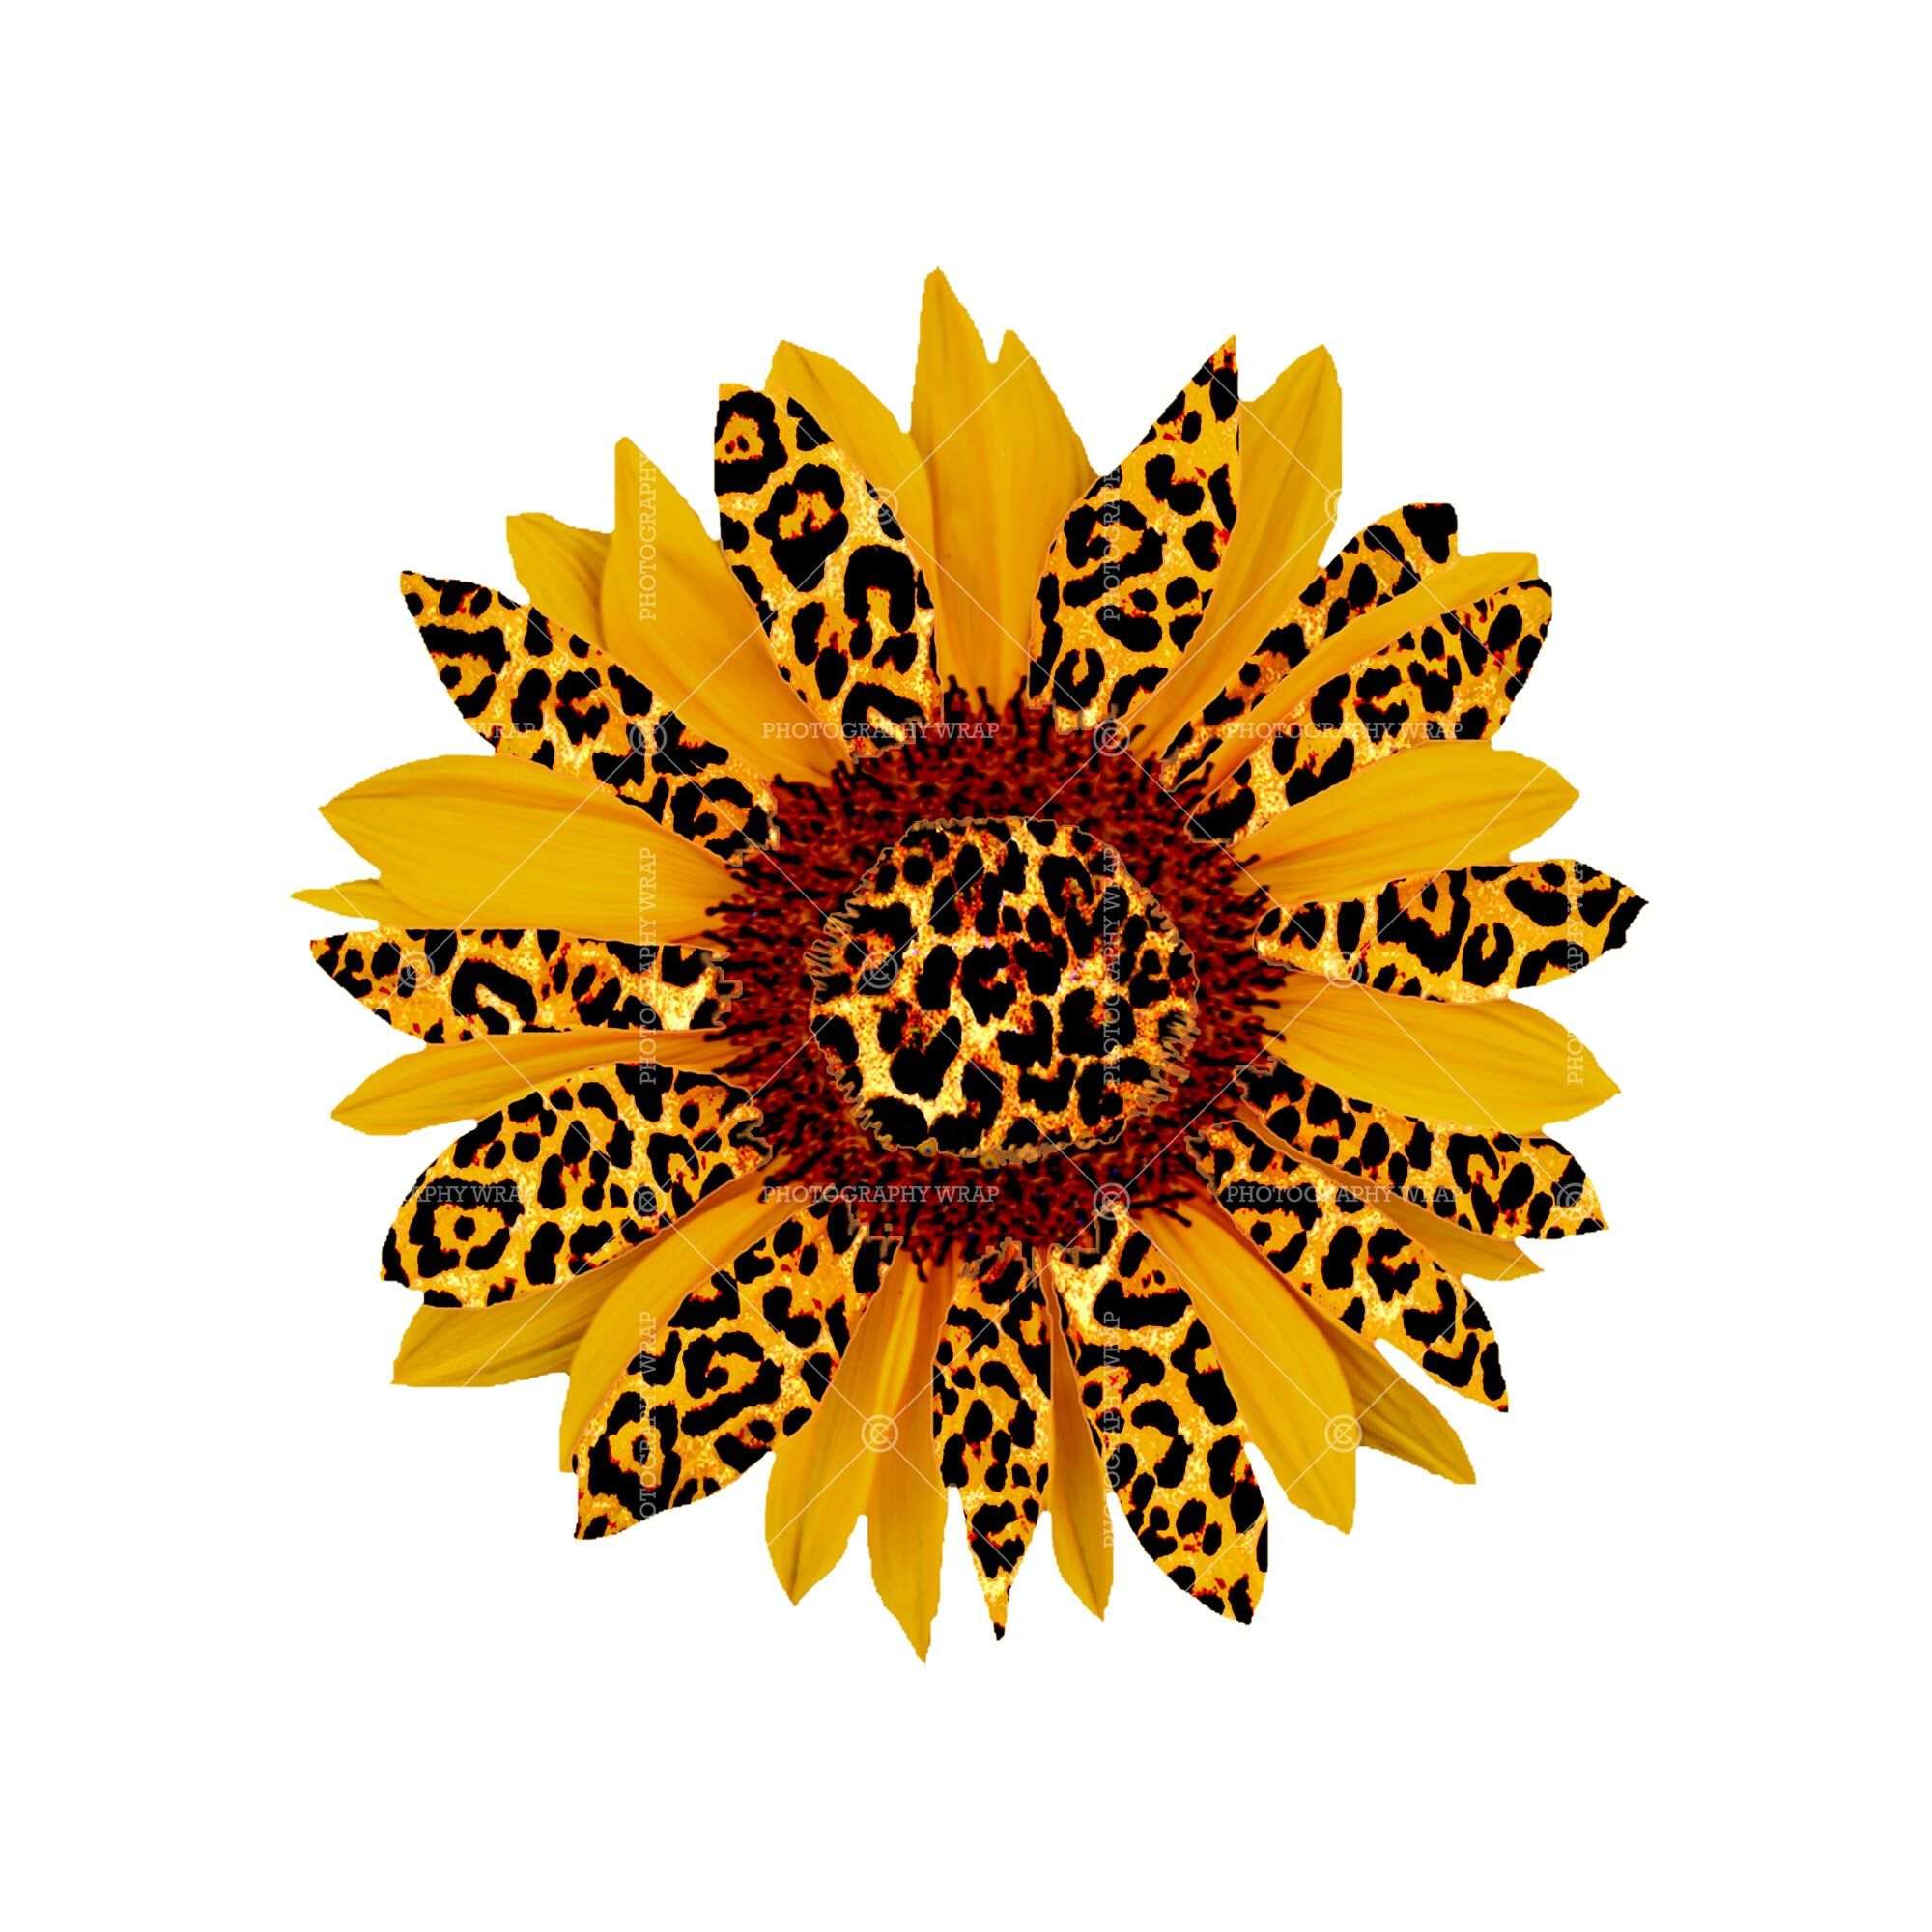 Excited To Share This Item From My Etsy Shop Leopard Sunflower Png Leopard Sunflower Sublimation Sunflower Png Sunflower Iphone Wallpaper Sunflower Images